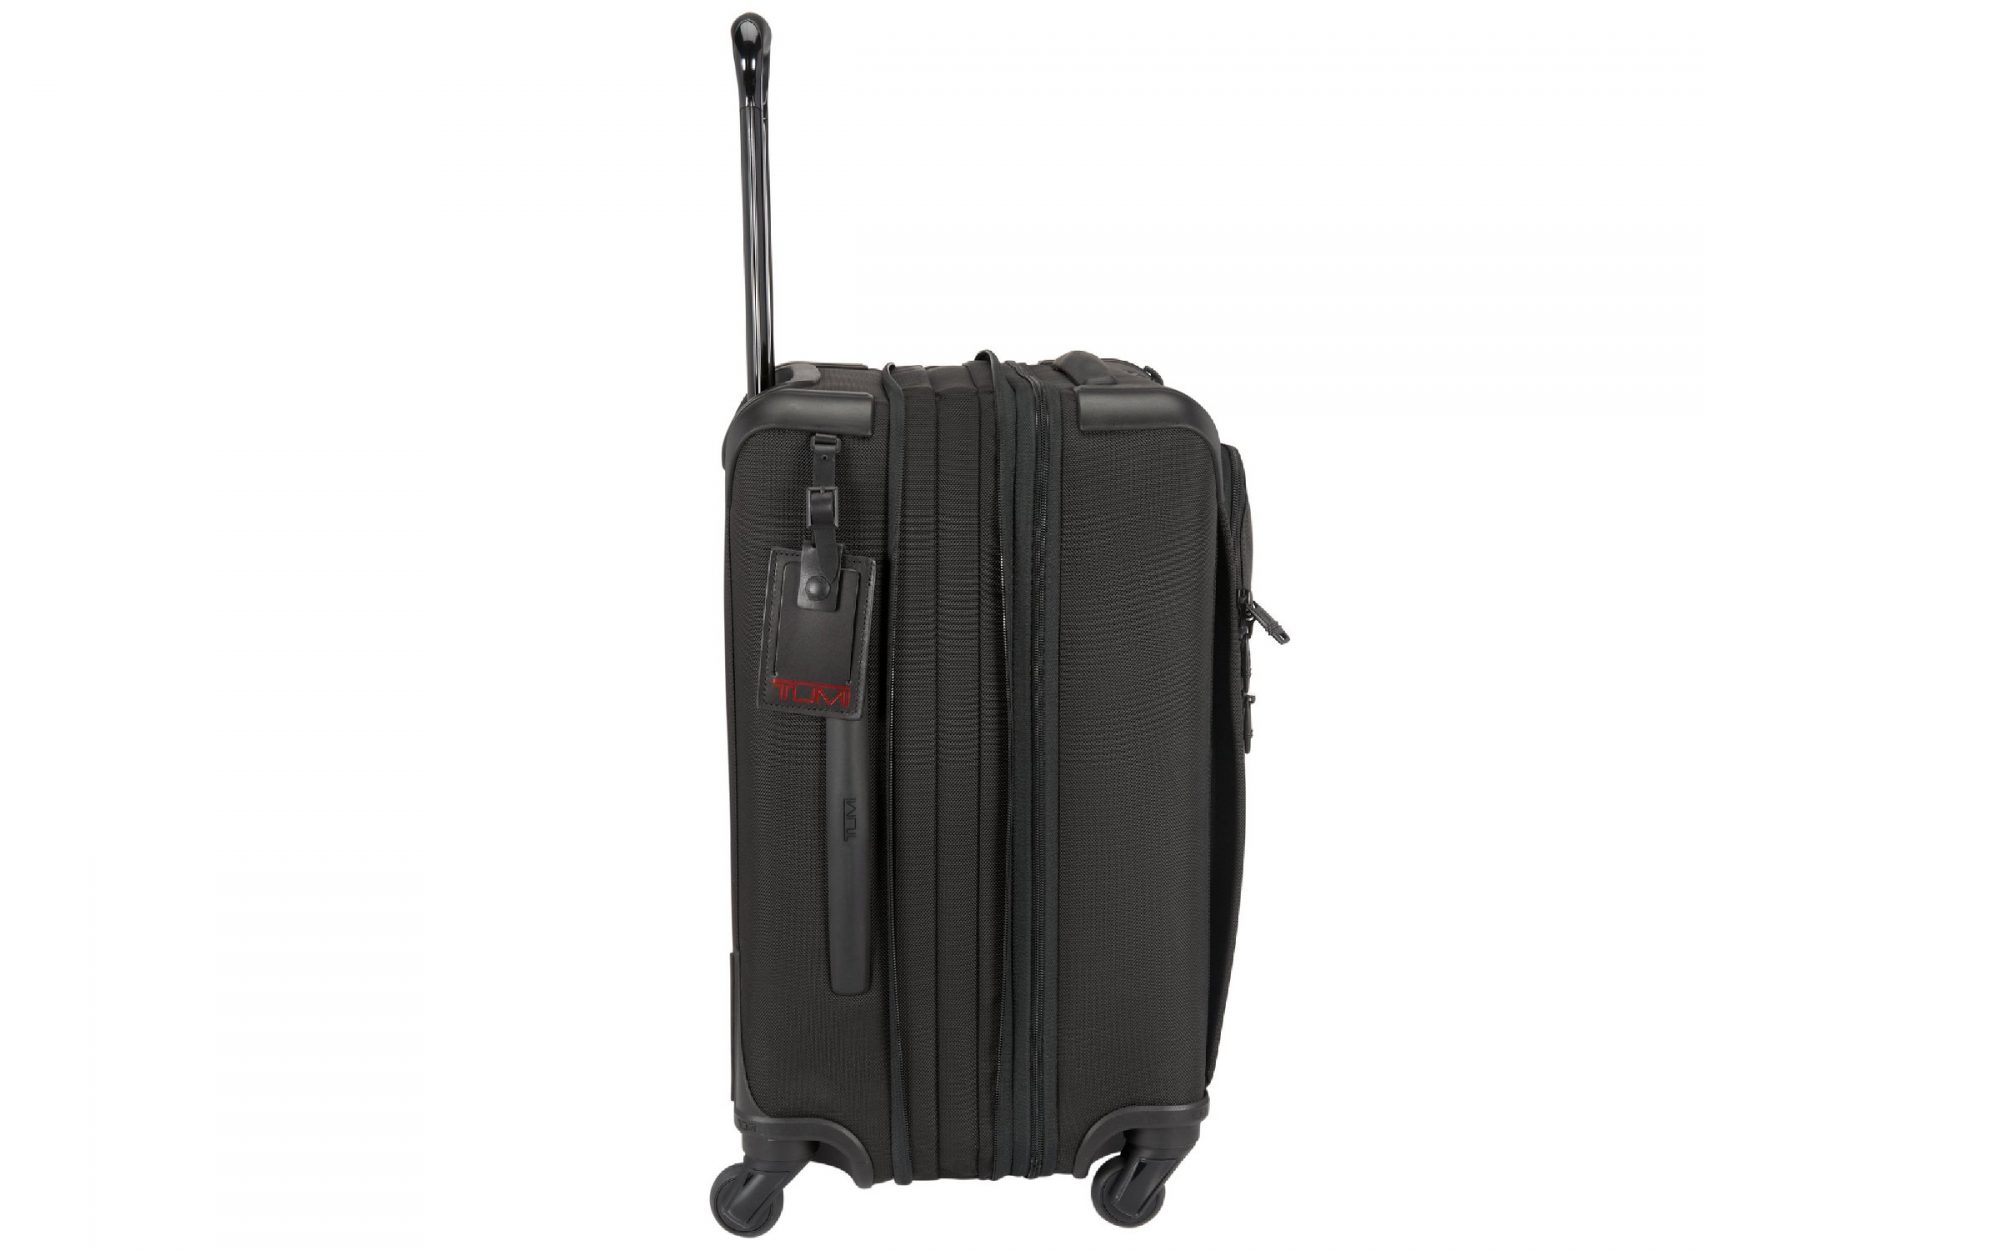 Best Carry-On Luggage for Business Travel: Tumi expandable wheeled carry on